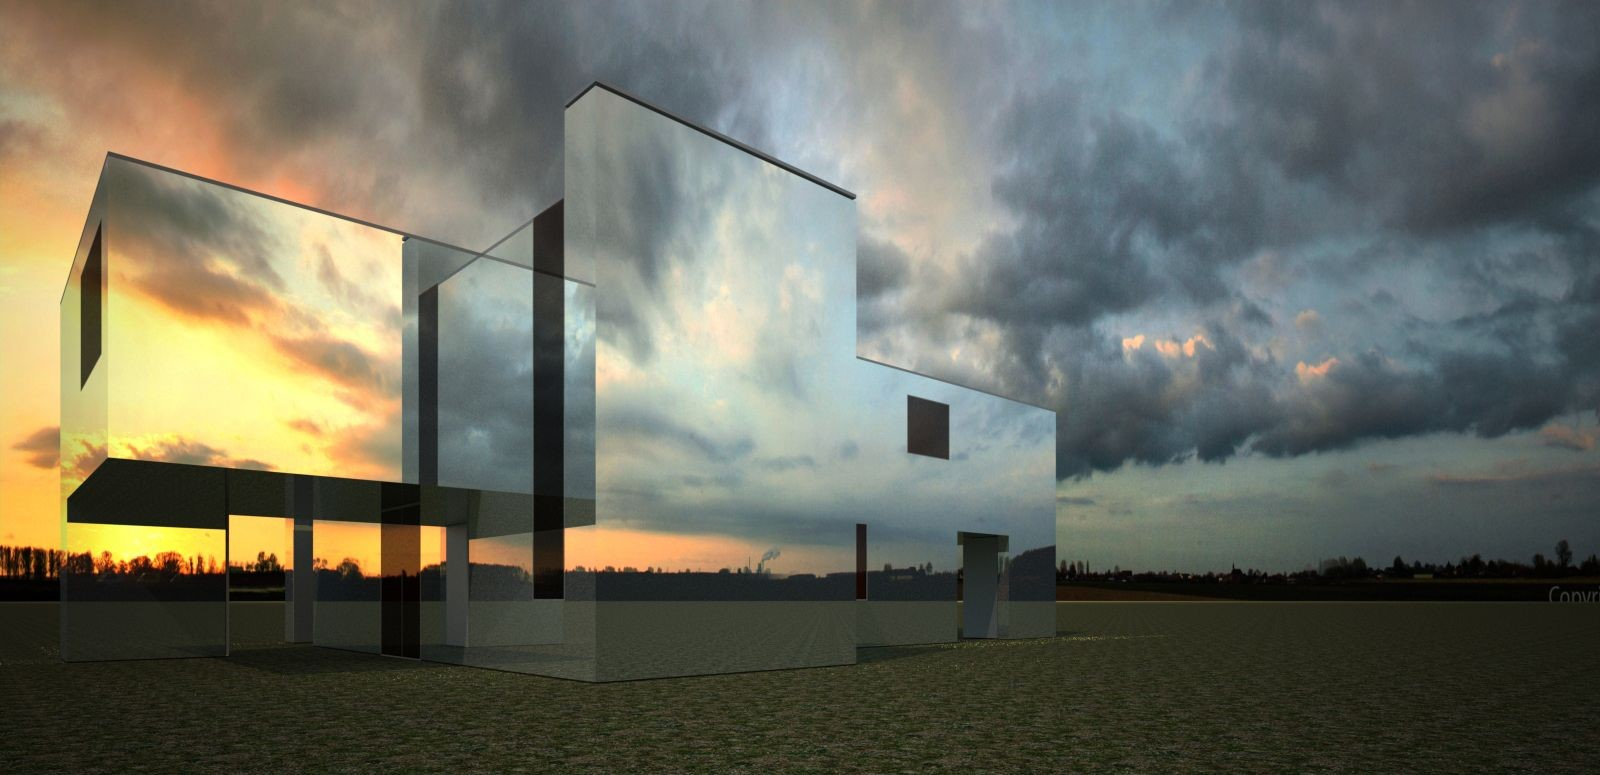 Mirror House by Pedro Joel Costa: The invisible building - Sheet1